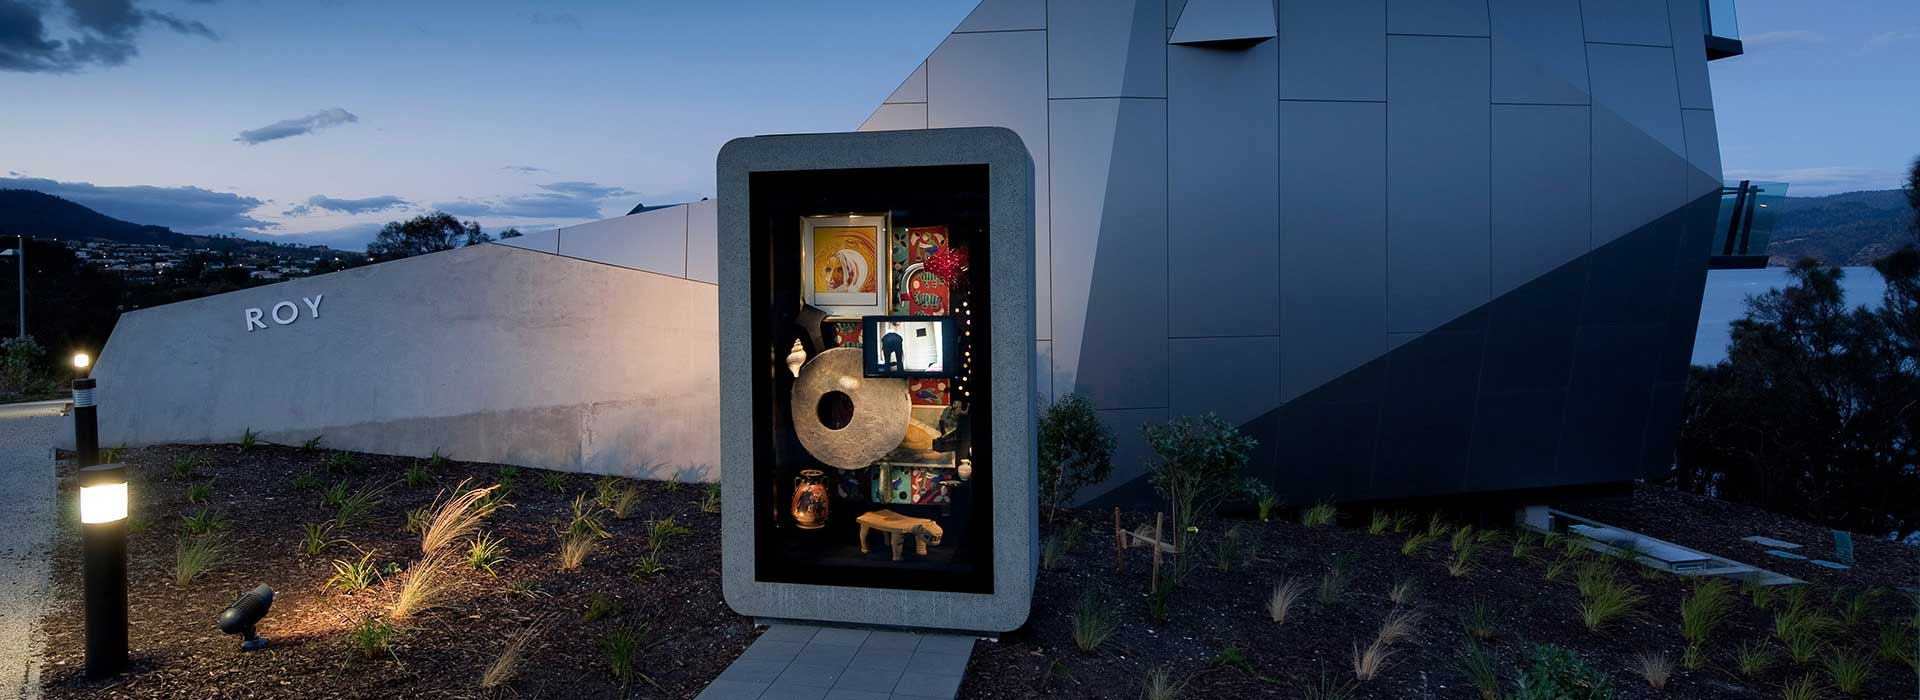 The Museum of Old and New Art (MONA) was founded by Australian collector David Walsh in Hobart, Tasmania, in 2011.